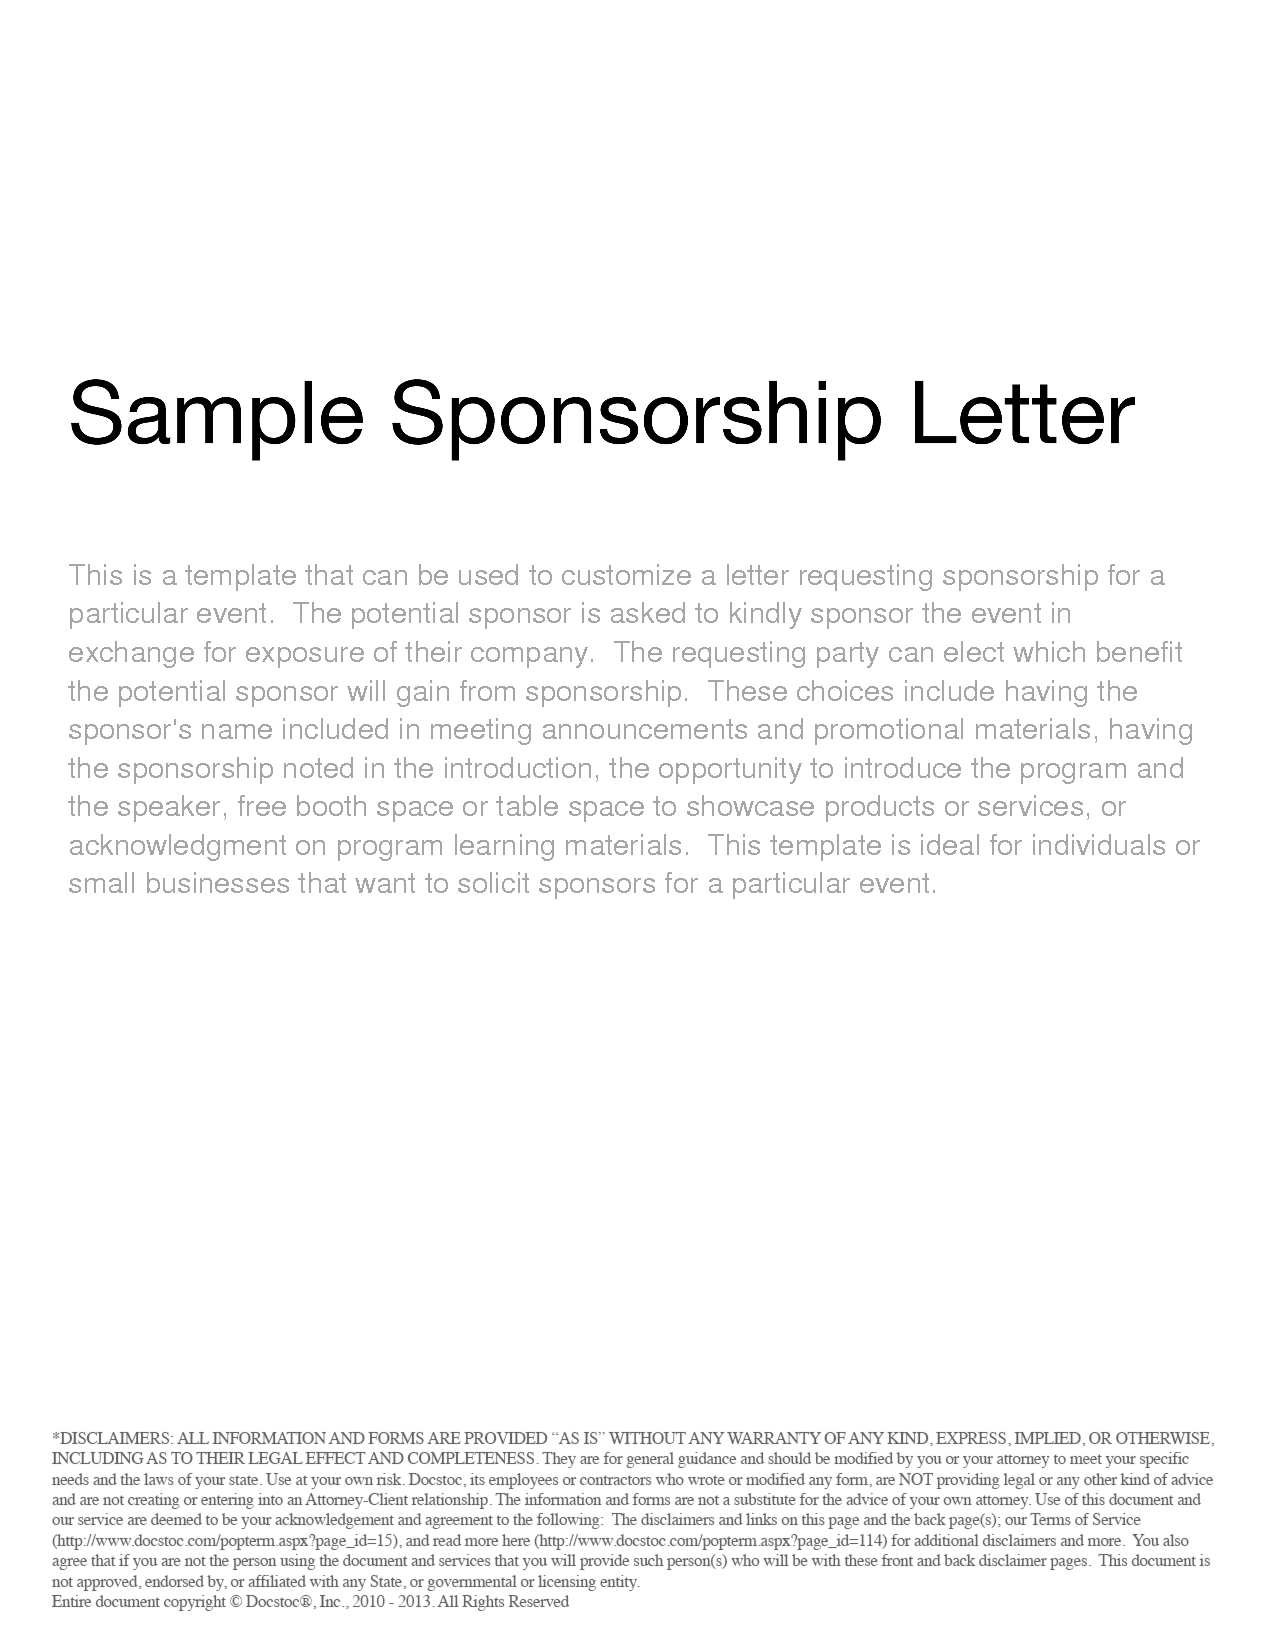 Doc694951 Format for Sponsorship Letter Request For – Free Sponsorship Letter